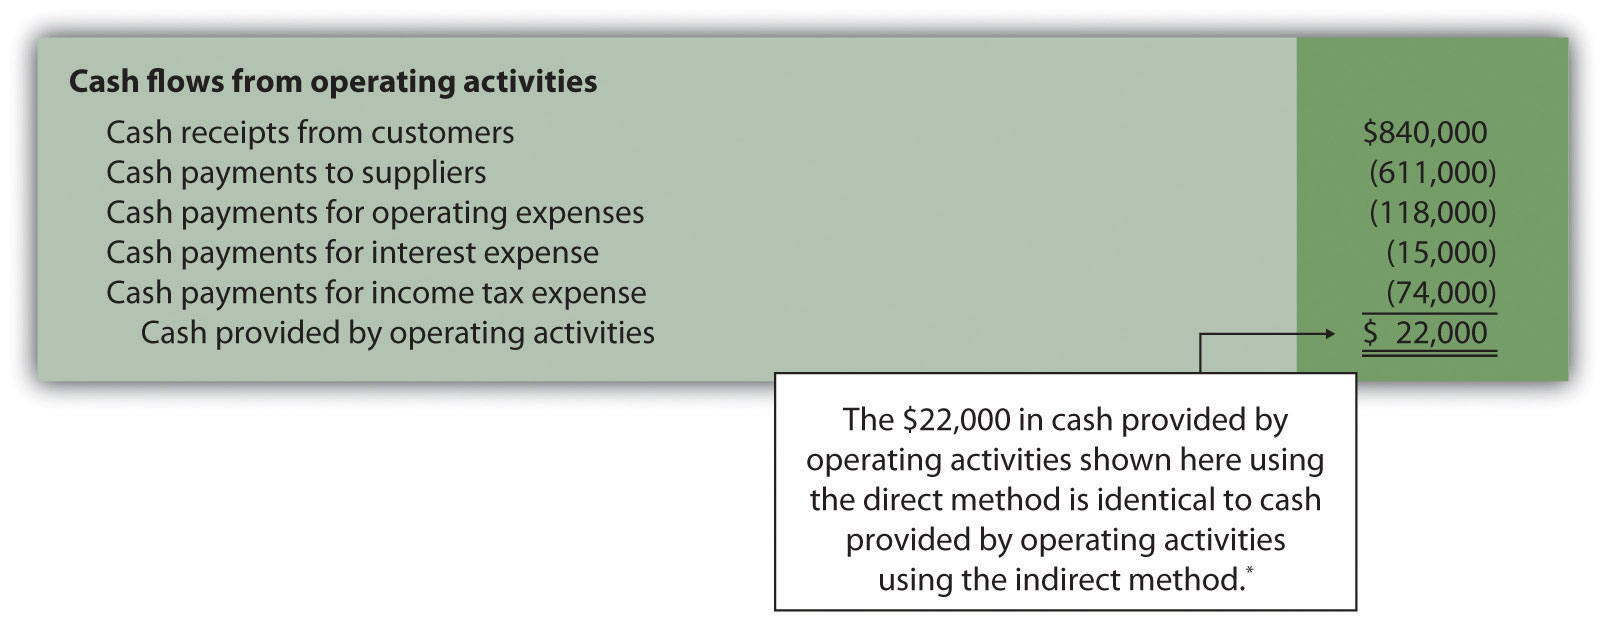 Converting Income Tax Expense To A Cash Basis  Method Statements Examples